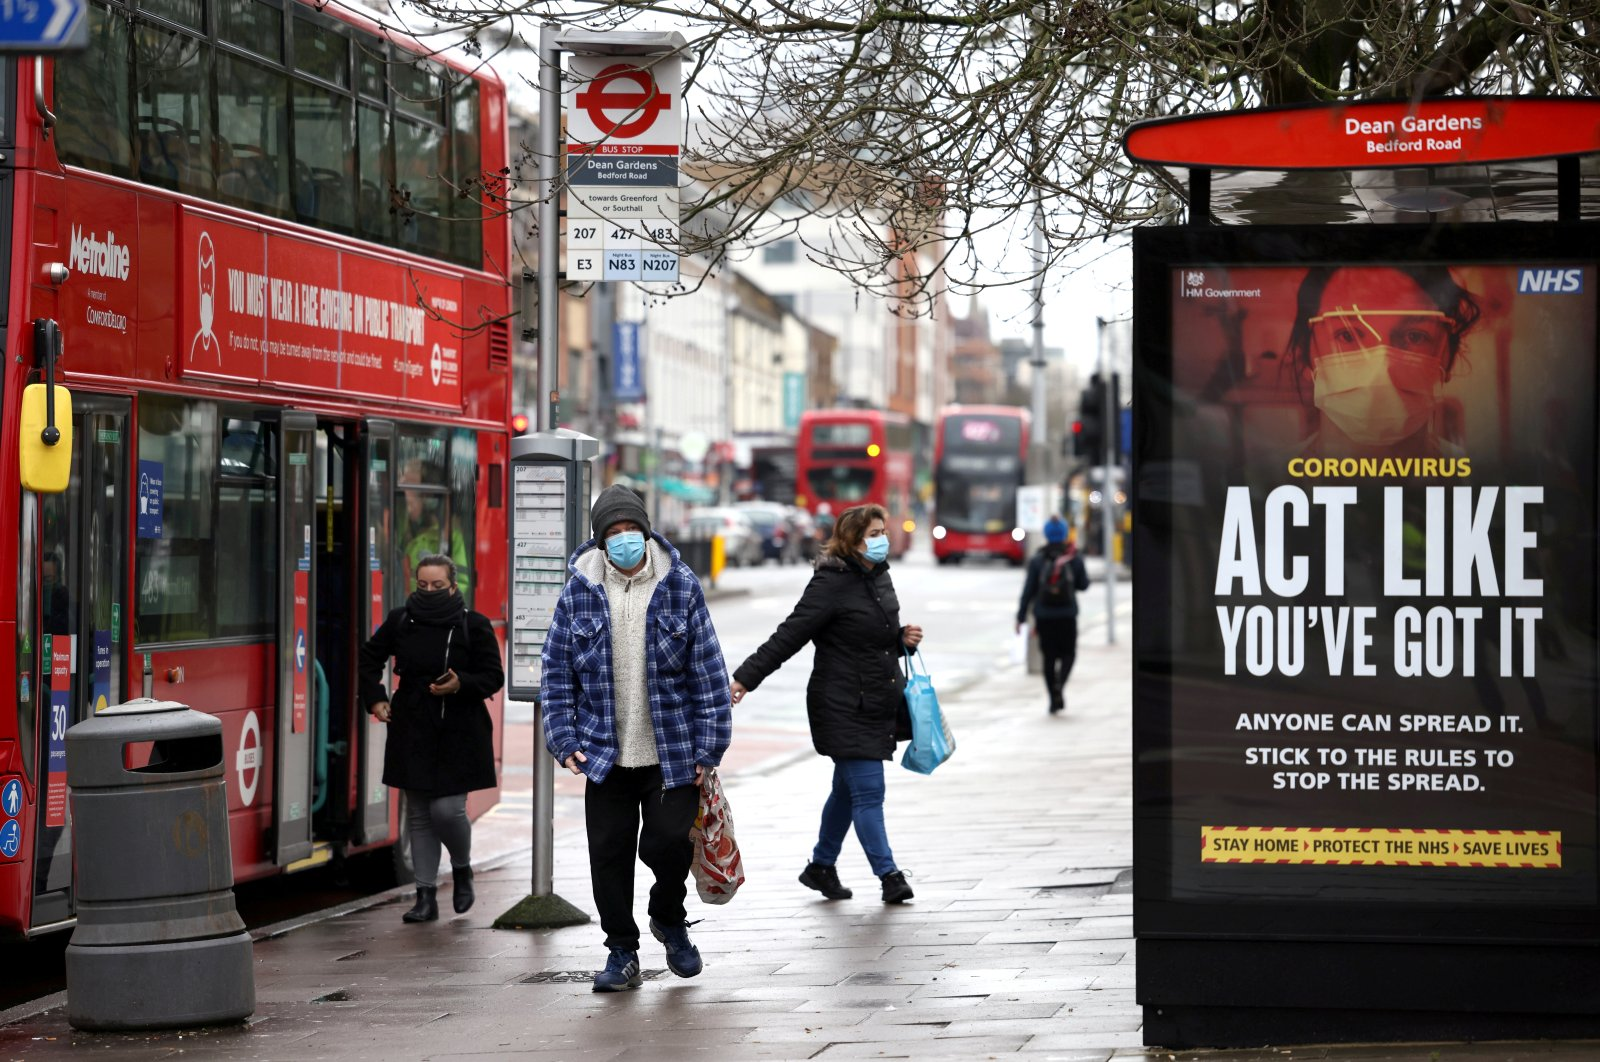 People get off the bus on Ealing high street where the new SARS-CoV-2 coronavirus variant originating from South Africa has been located, in west London, Britain Feb. 2, 2021. (Reuters Photo)